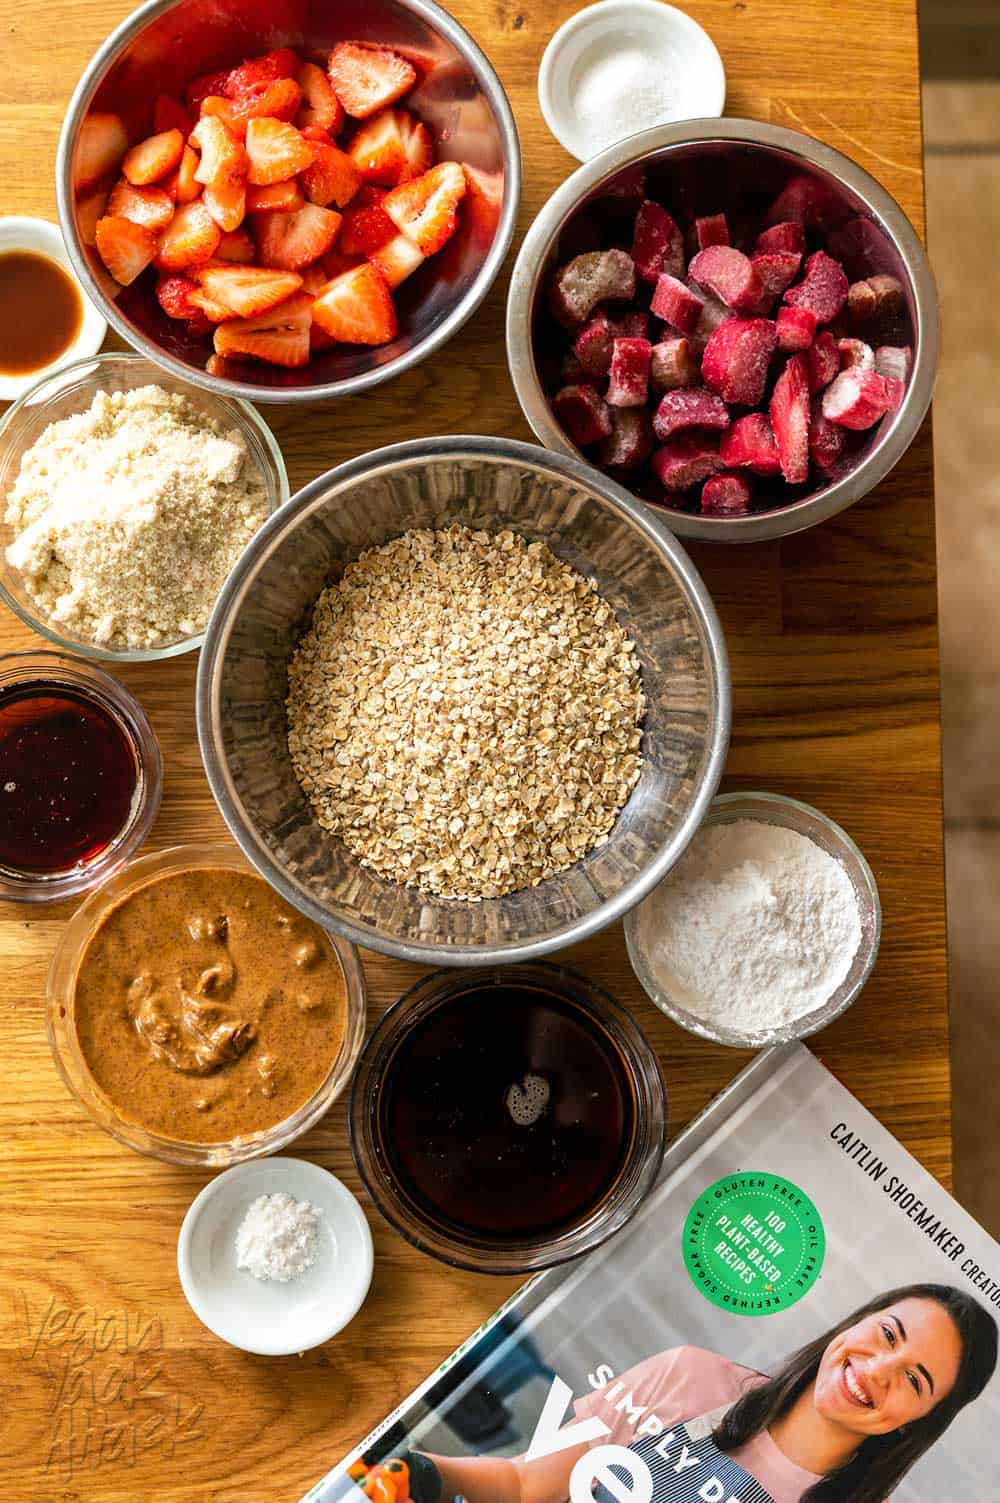 oats, strawberries, rhubarb, maple syrup, and more in small bowls on a cutting board